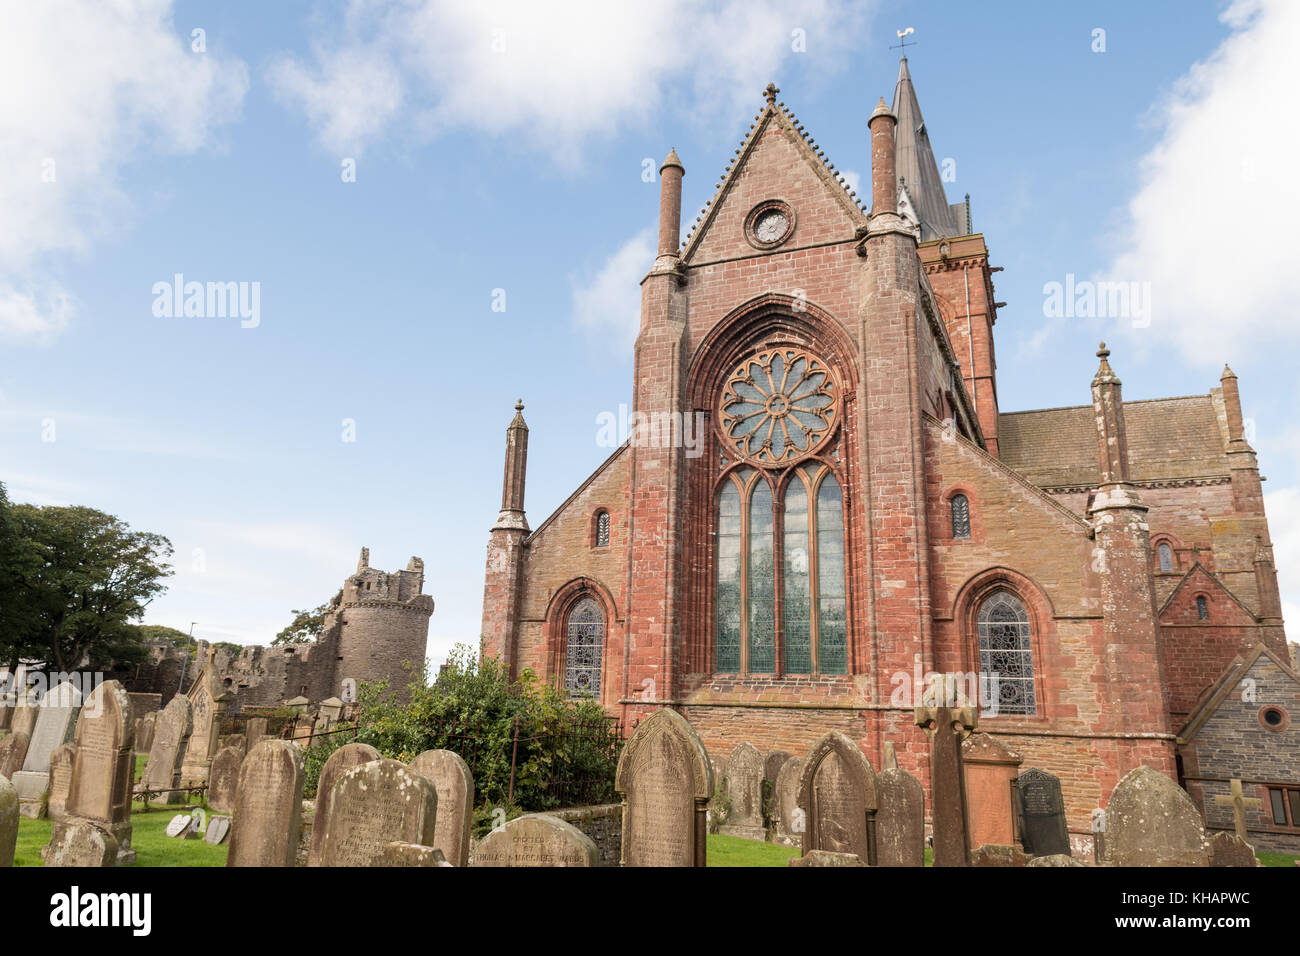 St Magnus Cathedral, Kirkwall, Orkney, Scotland, UK - Stock Image